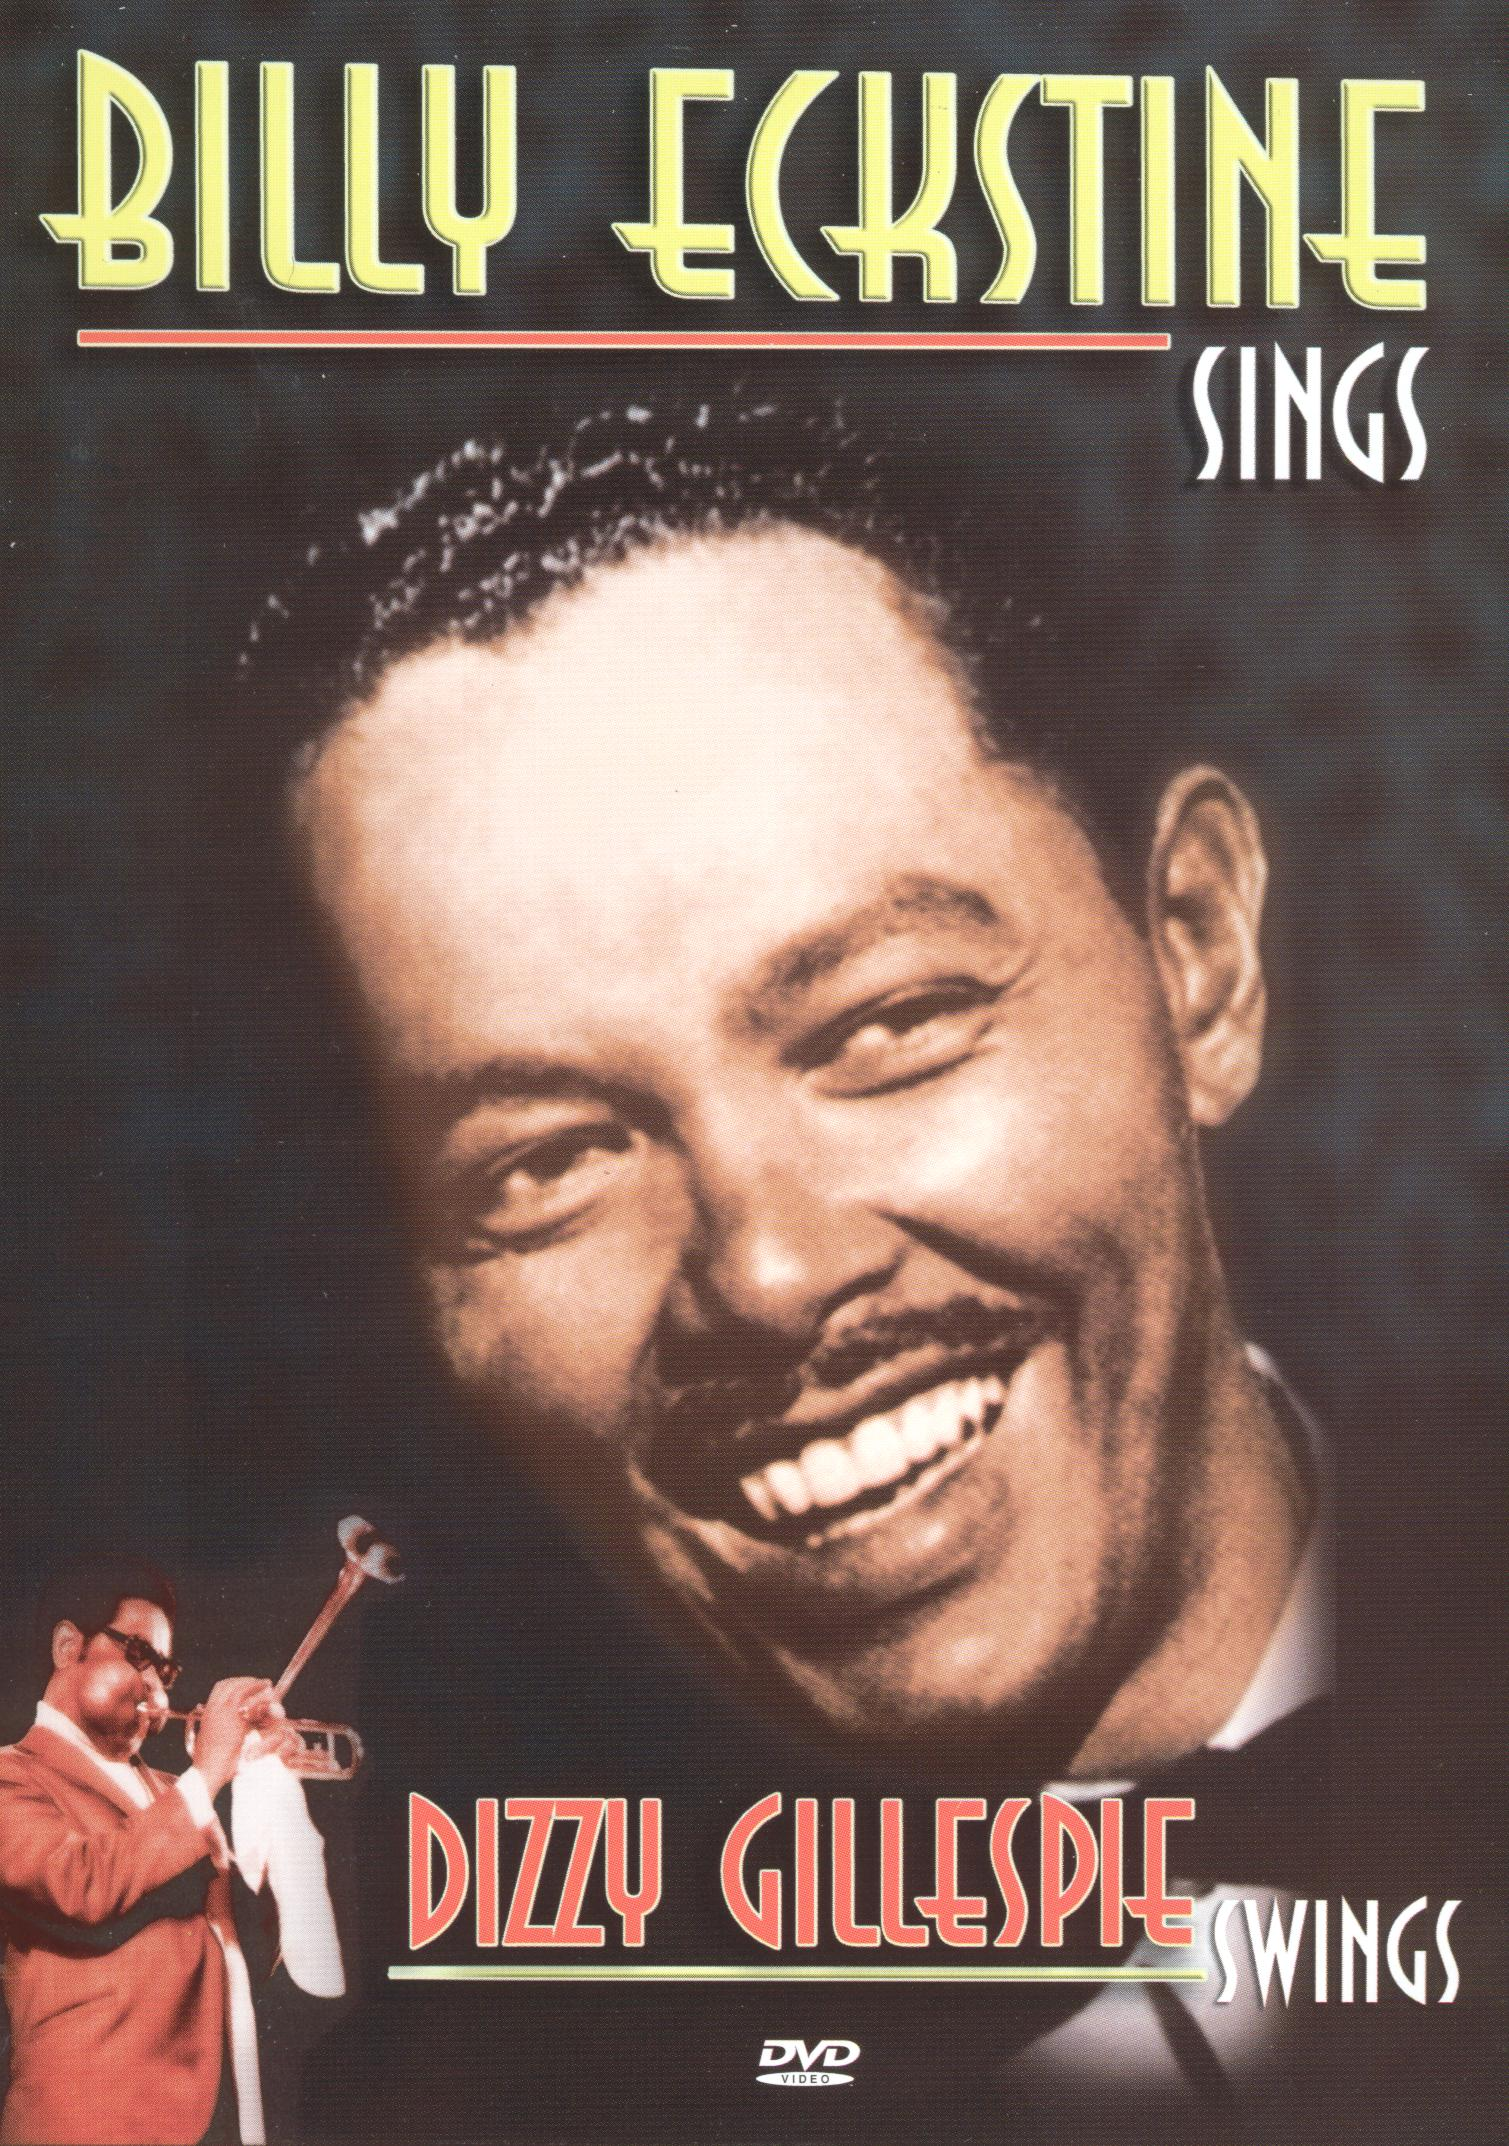 Billy Eckstine Sings and Dizzy Gillespie Swings